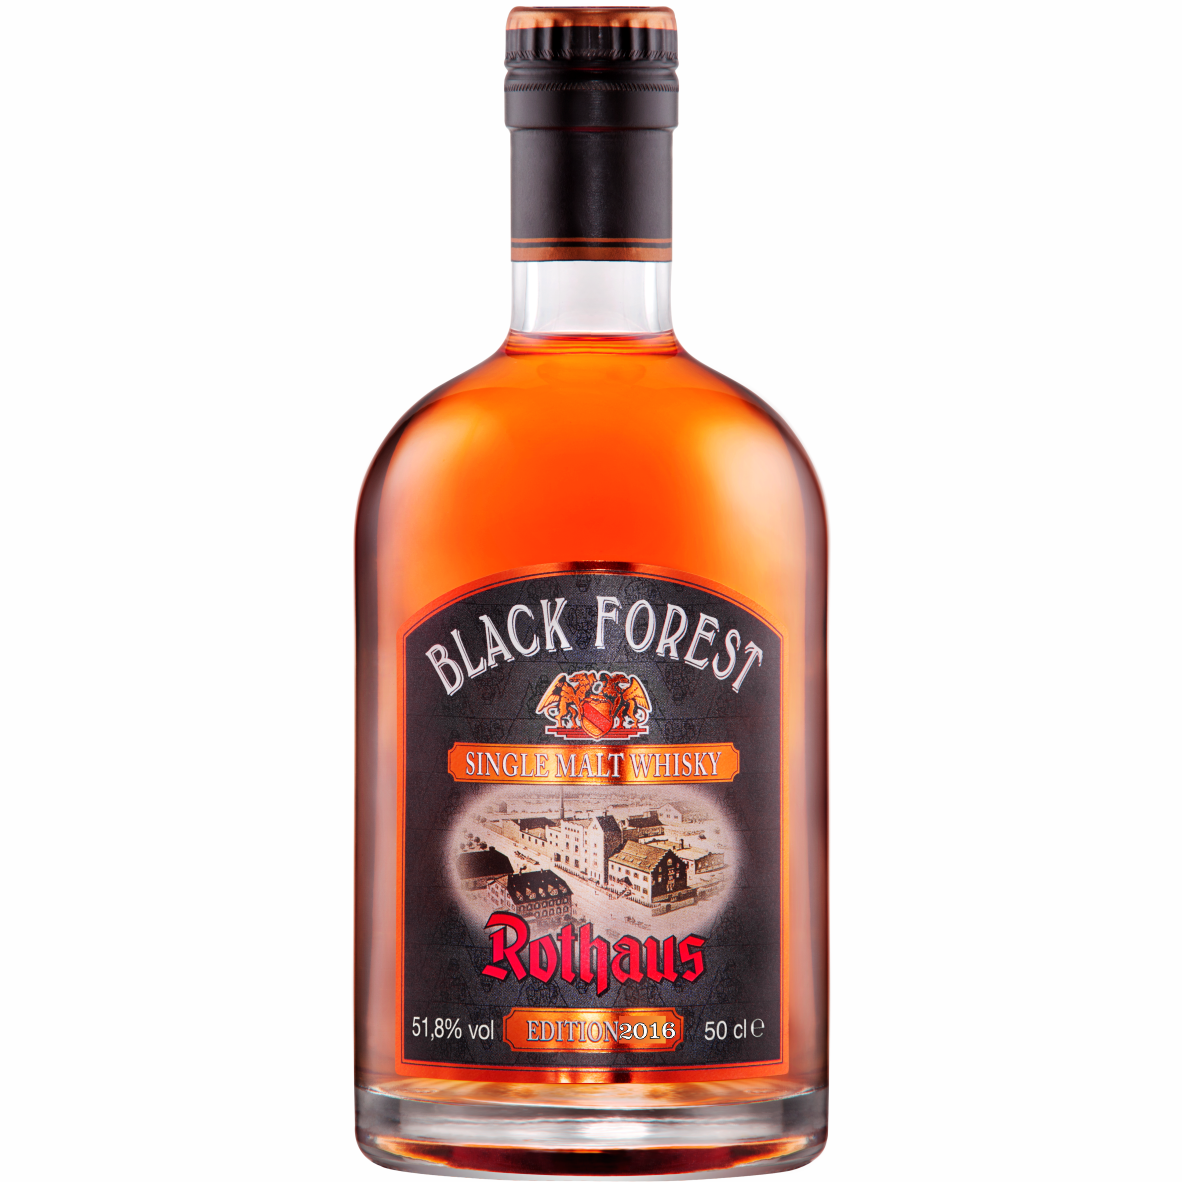 Black Forest Rothaus Single Malt Whisky